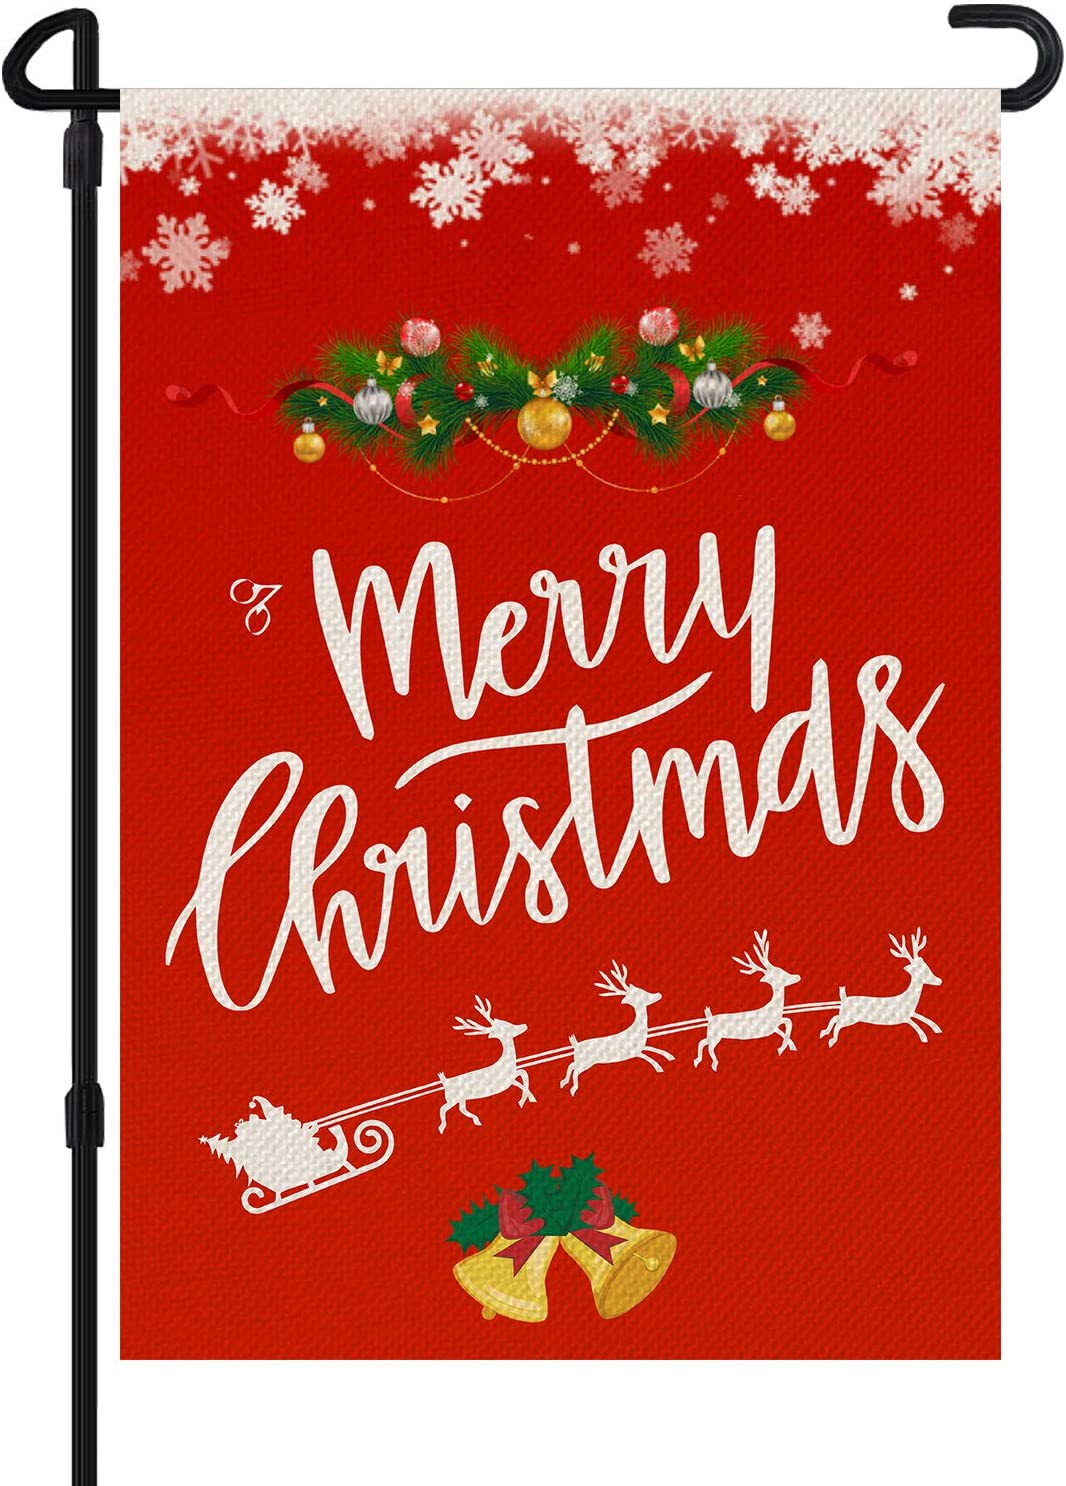 GOMALL Merry Christmas Garden Flag,Retro Red Double Sided Welcome Winter Garden Flag with Snowflake Elf,Practical Creative, New Year Seasonal Outdoor Flag for Yard Lawn Farmhouse Decor